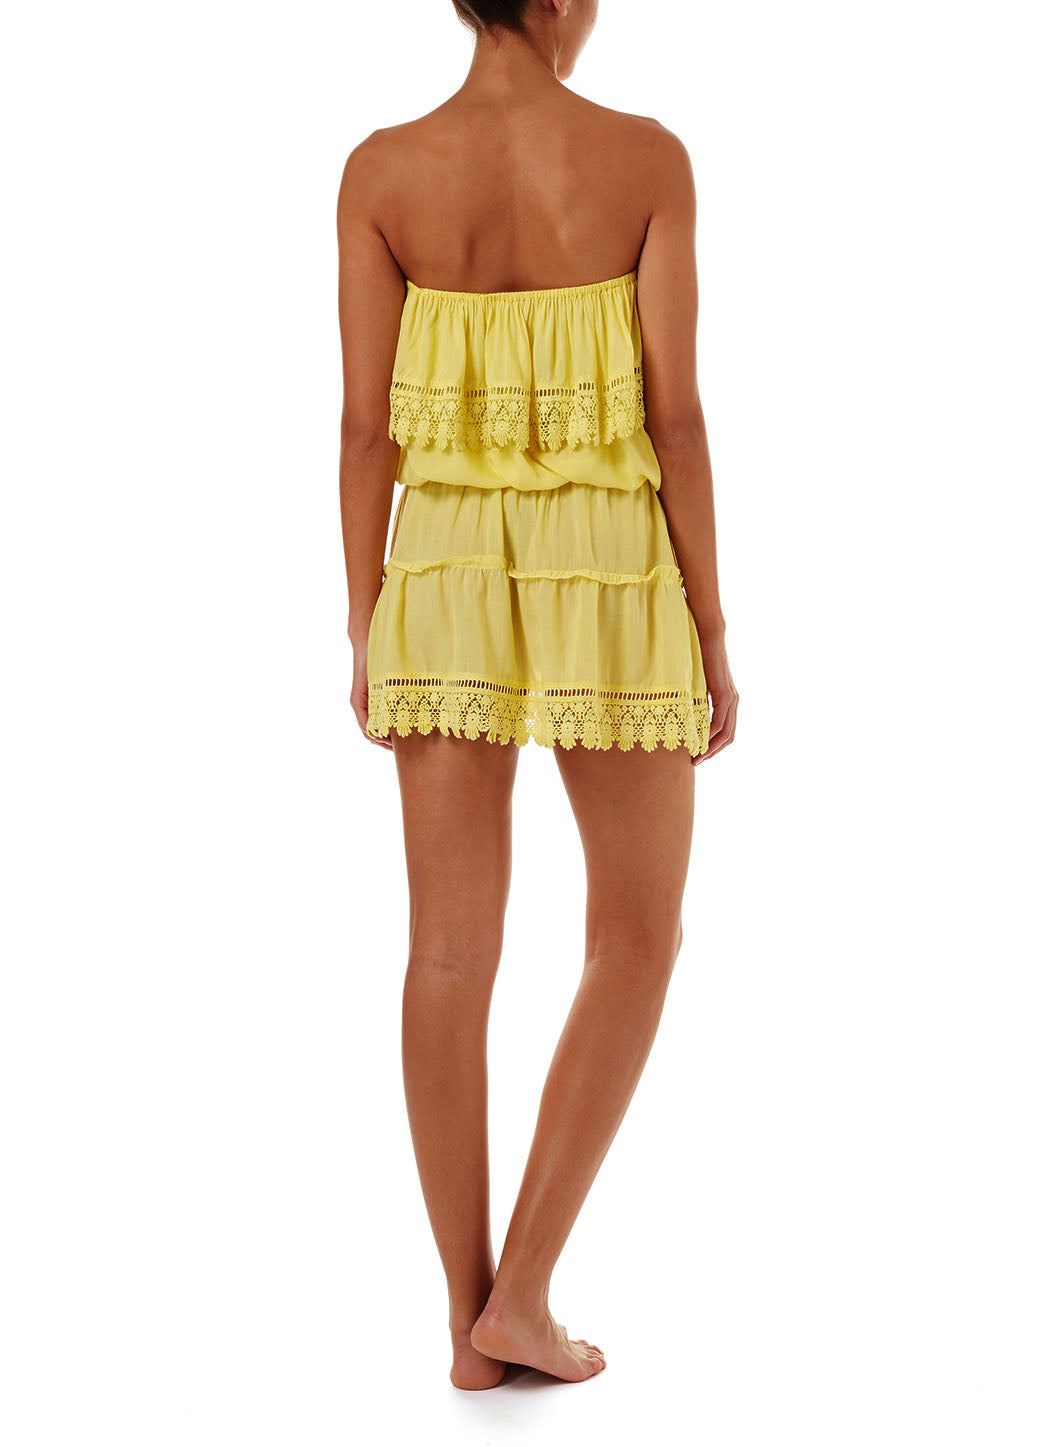 Joy Yellow Bandeau Embroidered Frill Short Dress